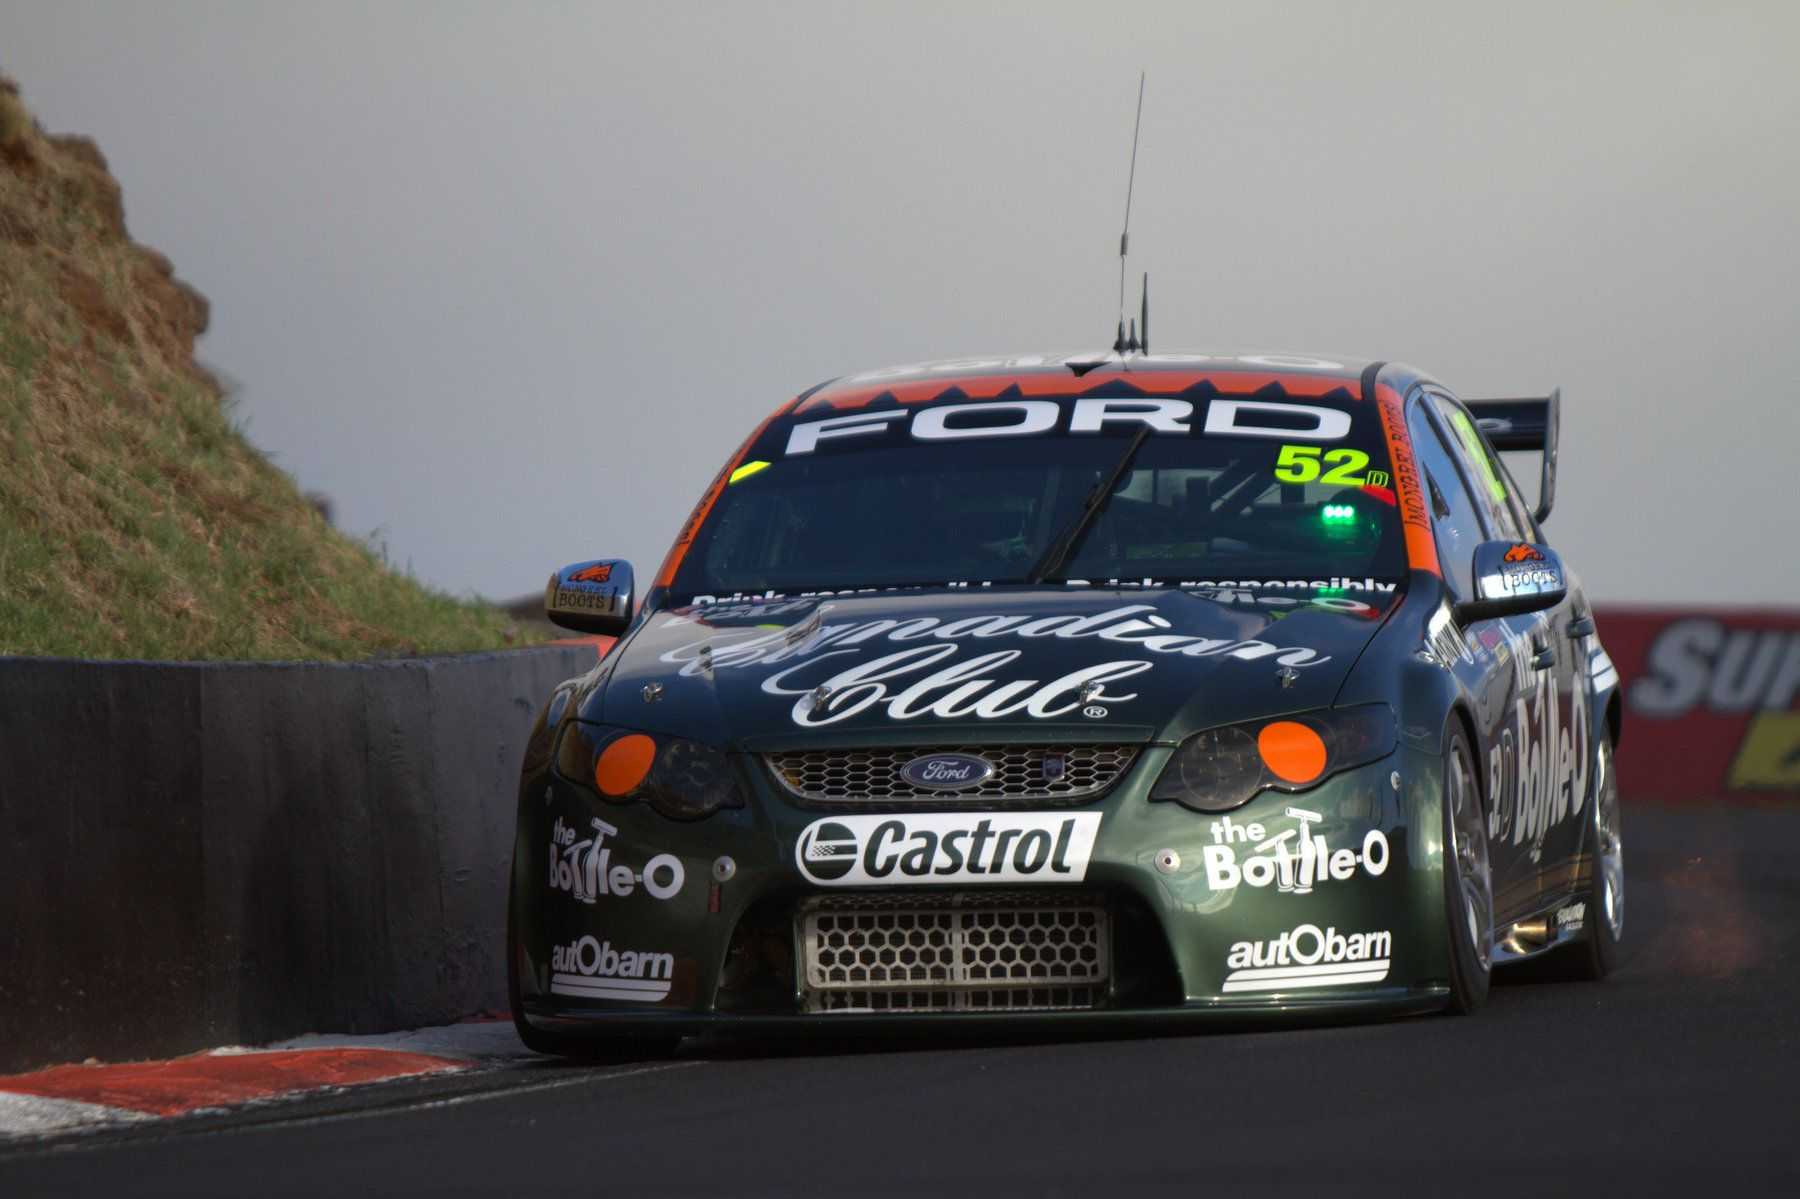 The David Reynolds Dean Canto Retro Bottle O Ford Falcon Coming Into The Dipper During Bathurst 1000 Warm Up This Was De Super Cars Ford Falcon V8 Supercars